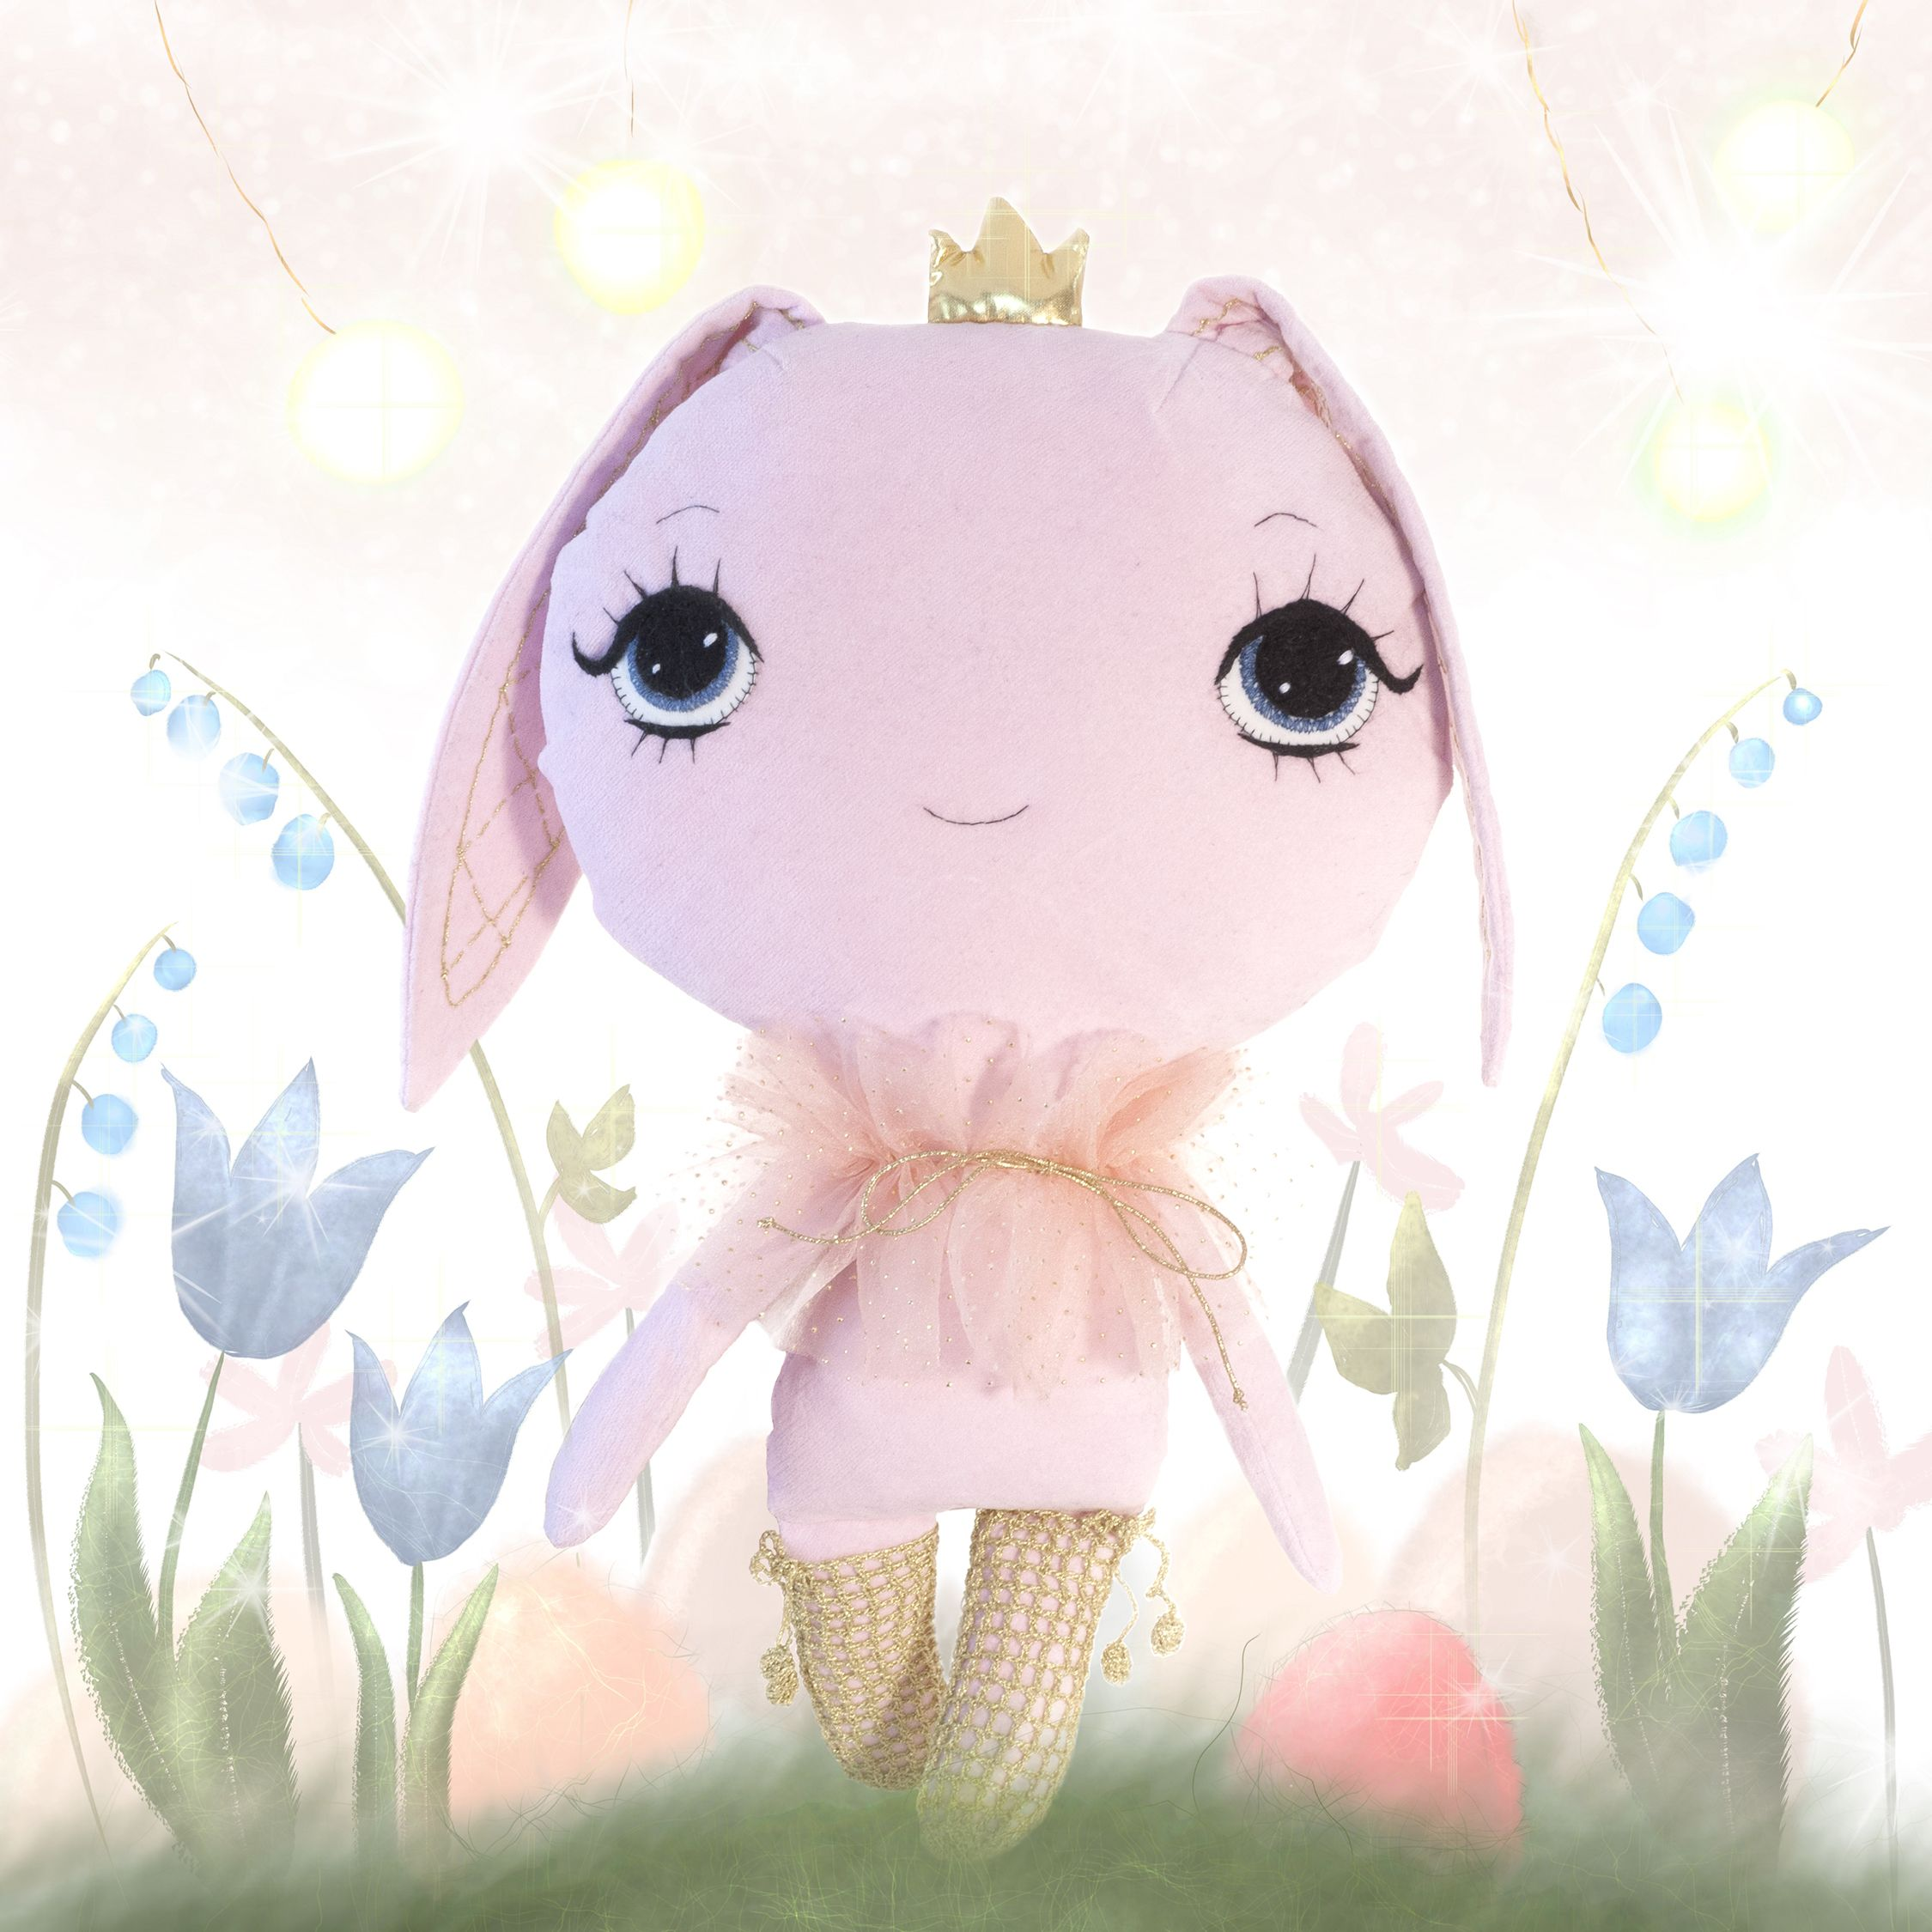 Dollcloud pink cotton bunny doll for 2017 February giveaway #bunny